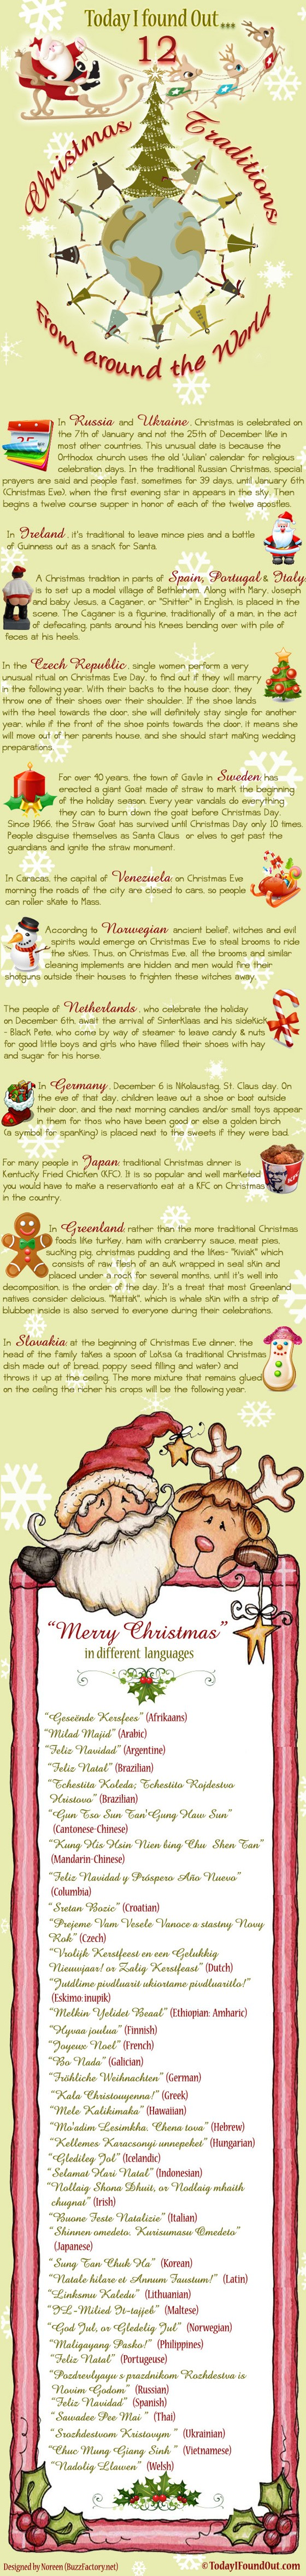 Christmas Traditions Infographic 560x4713